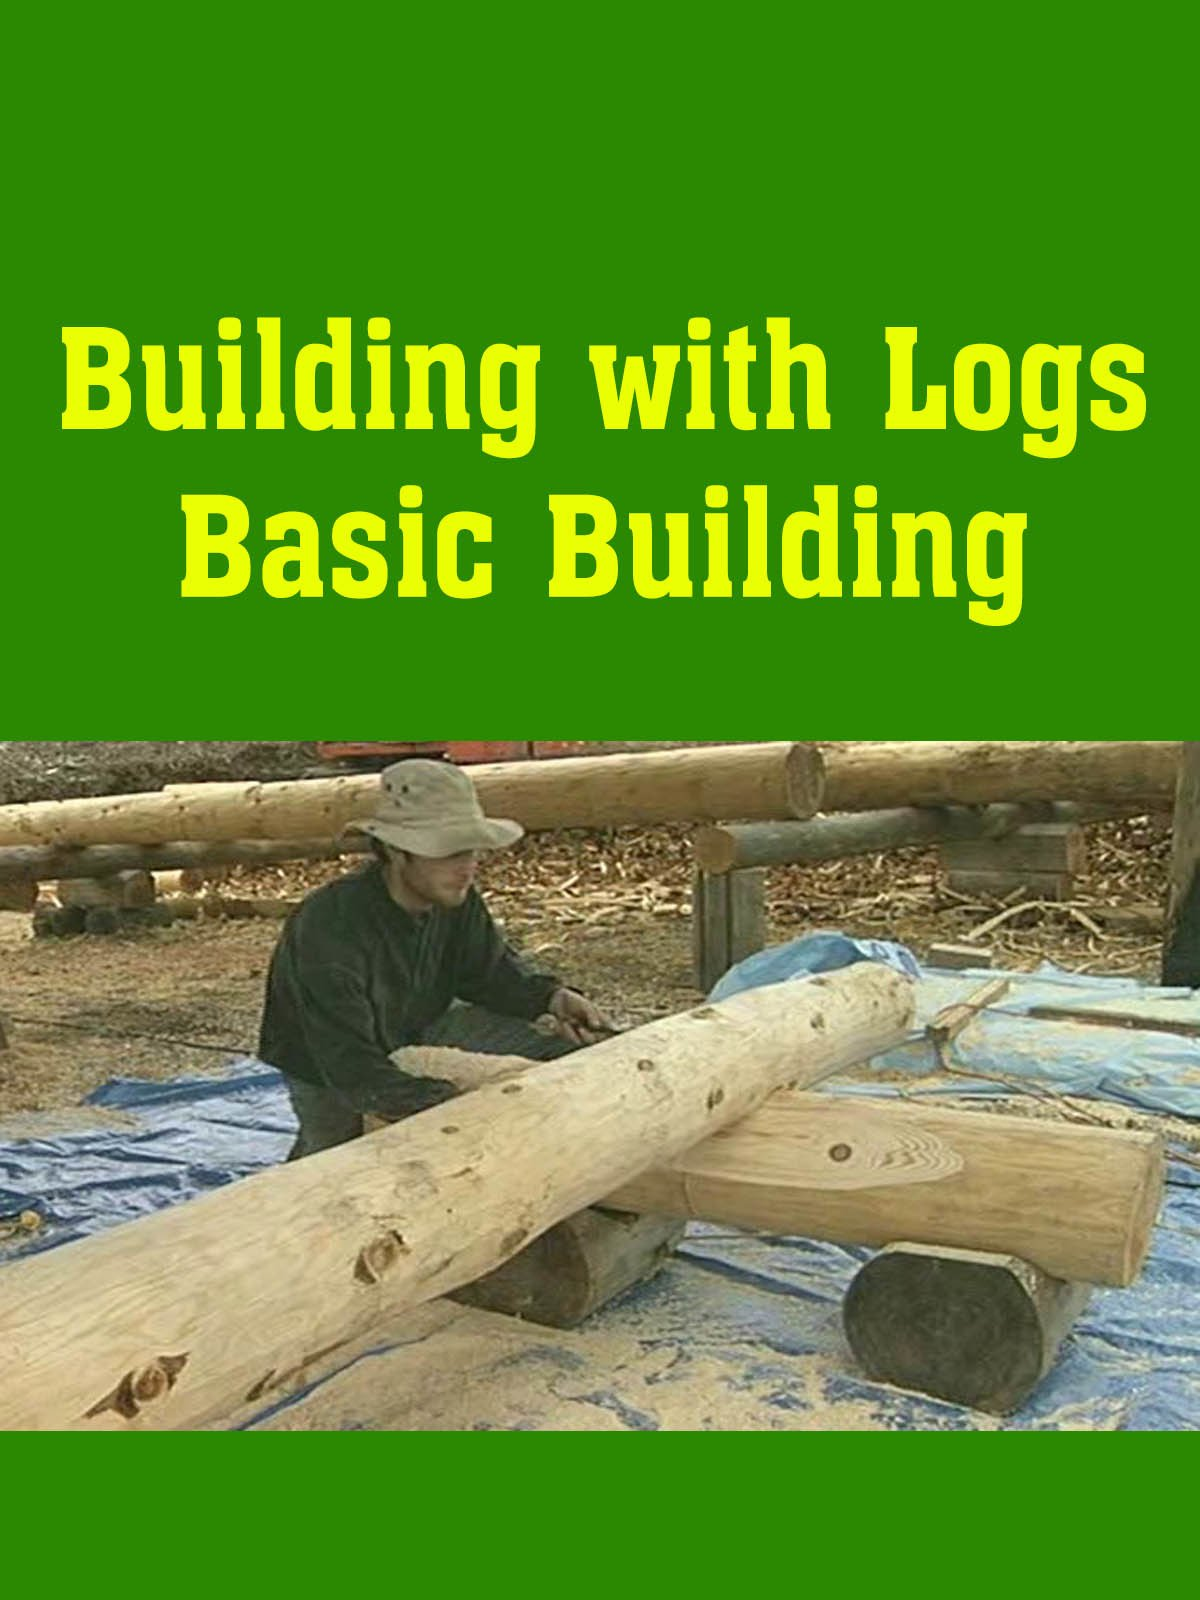 Building with Logs Basic Building